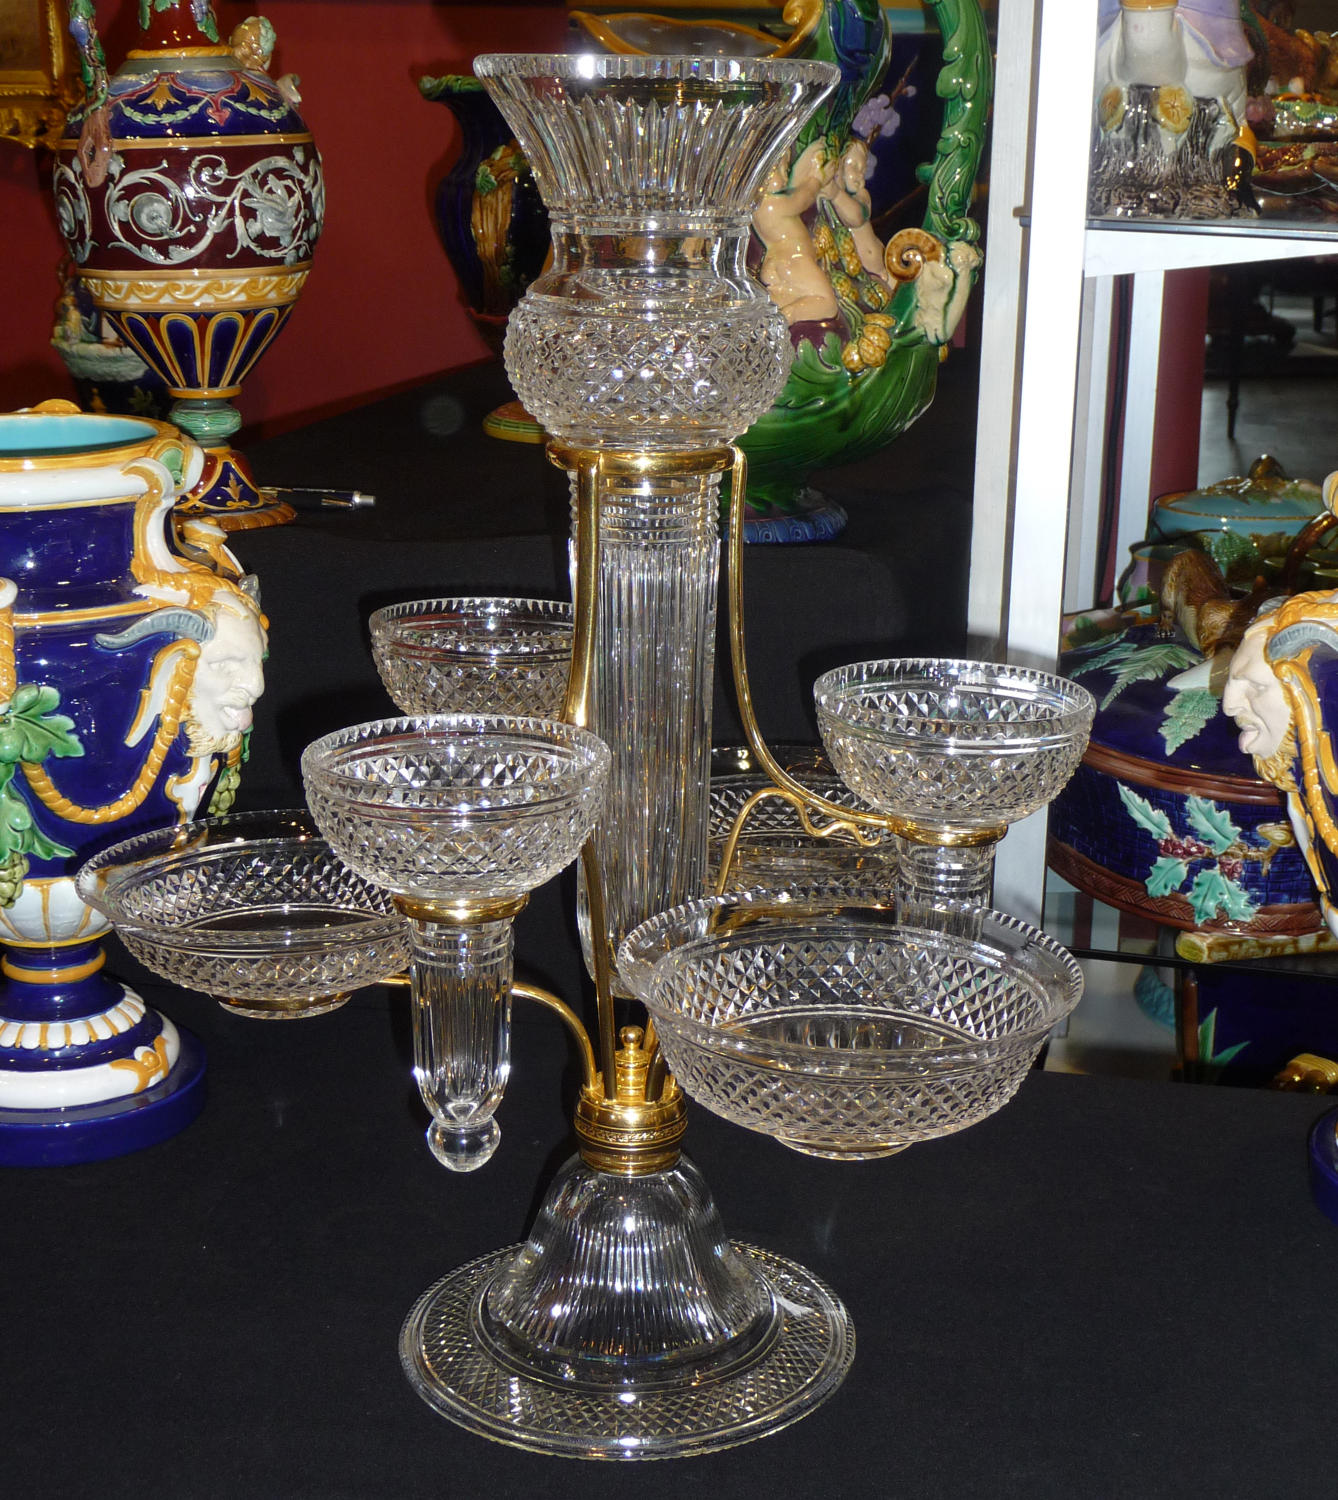 Phenomenal cut crystal & ormolu epergne